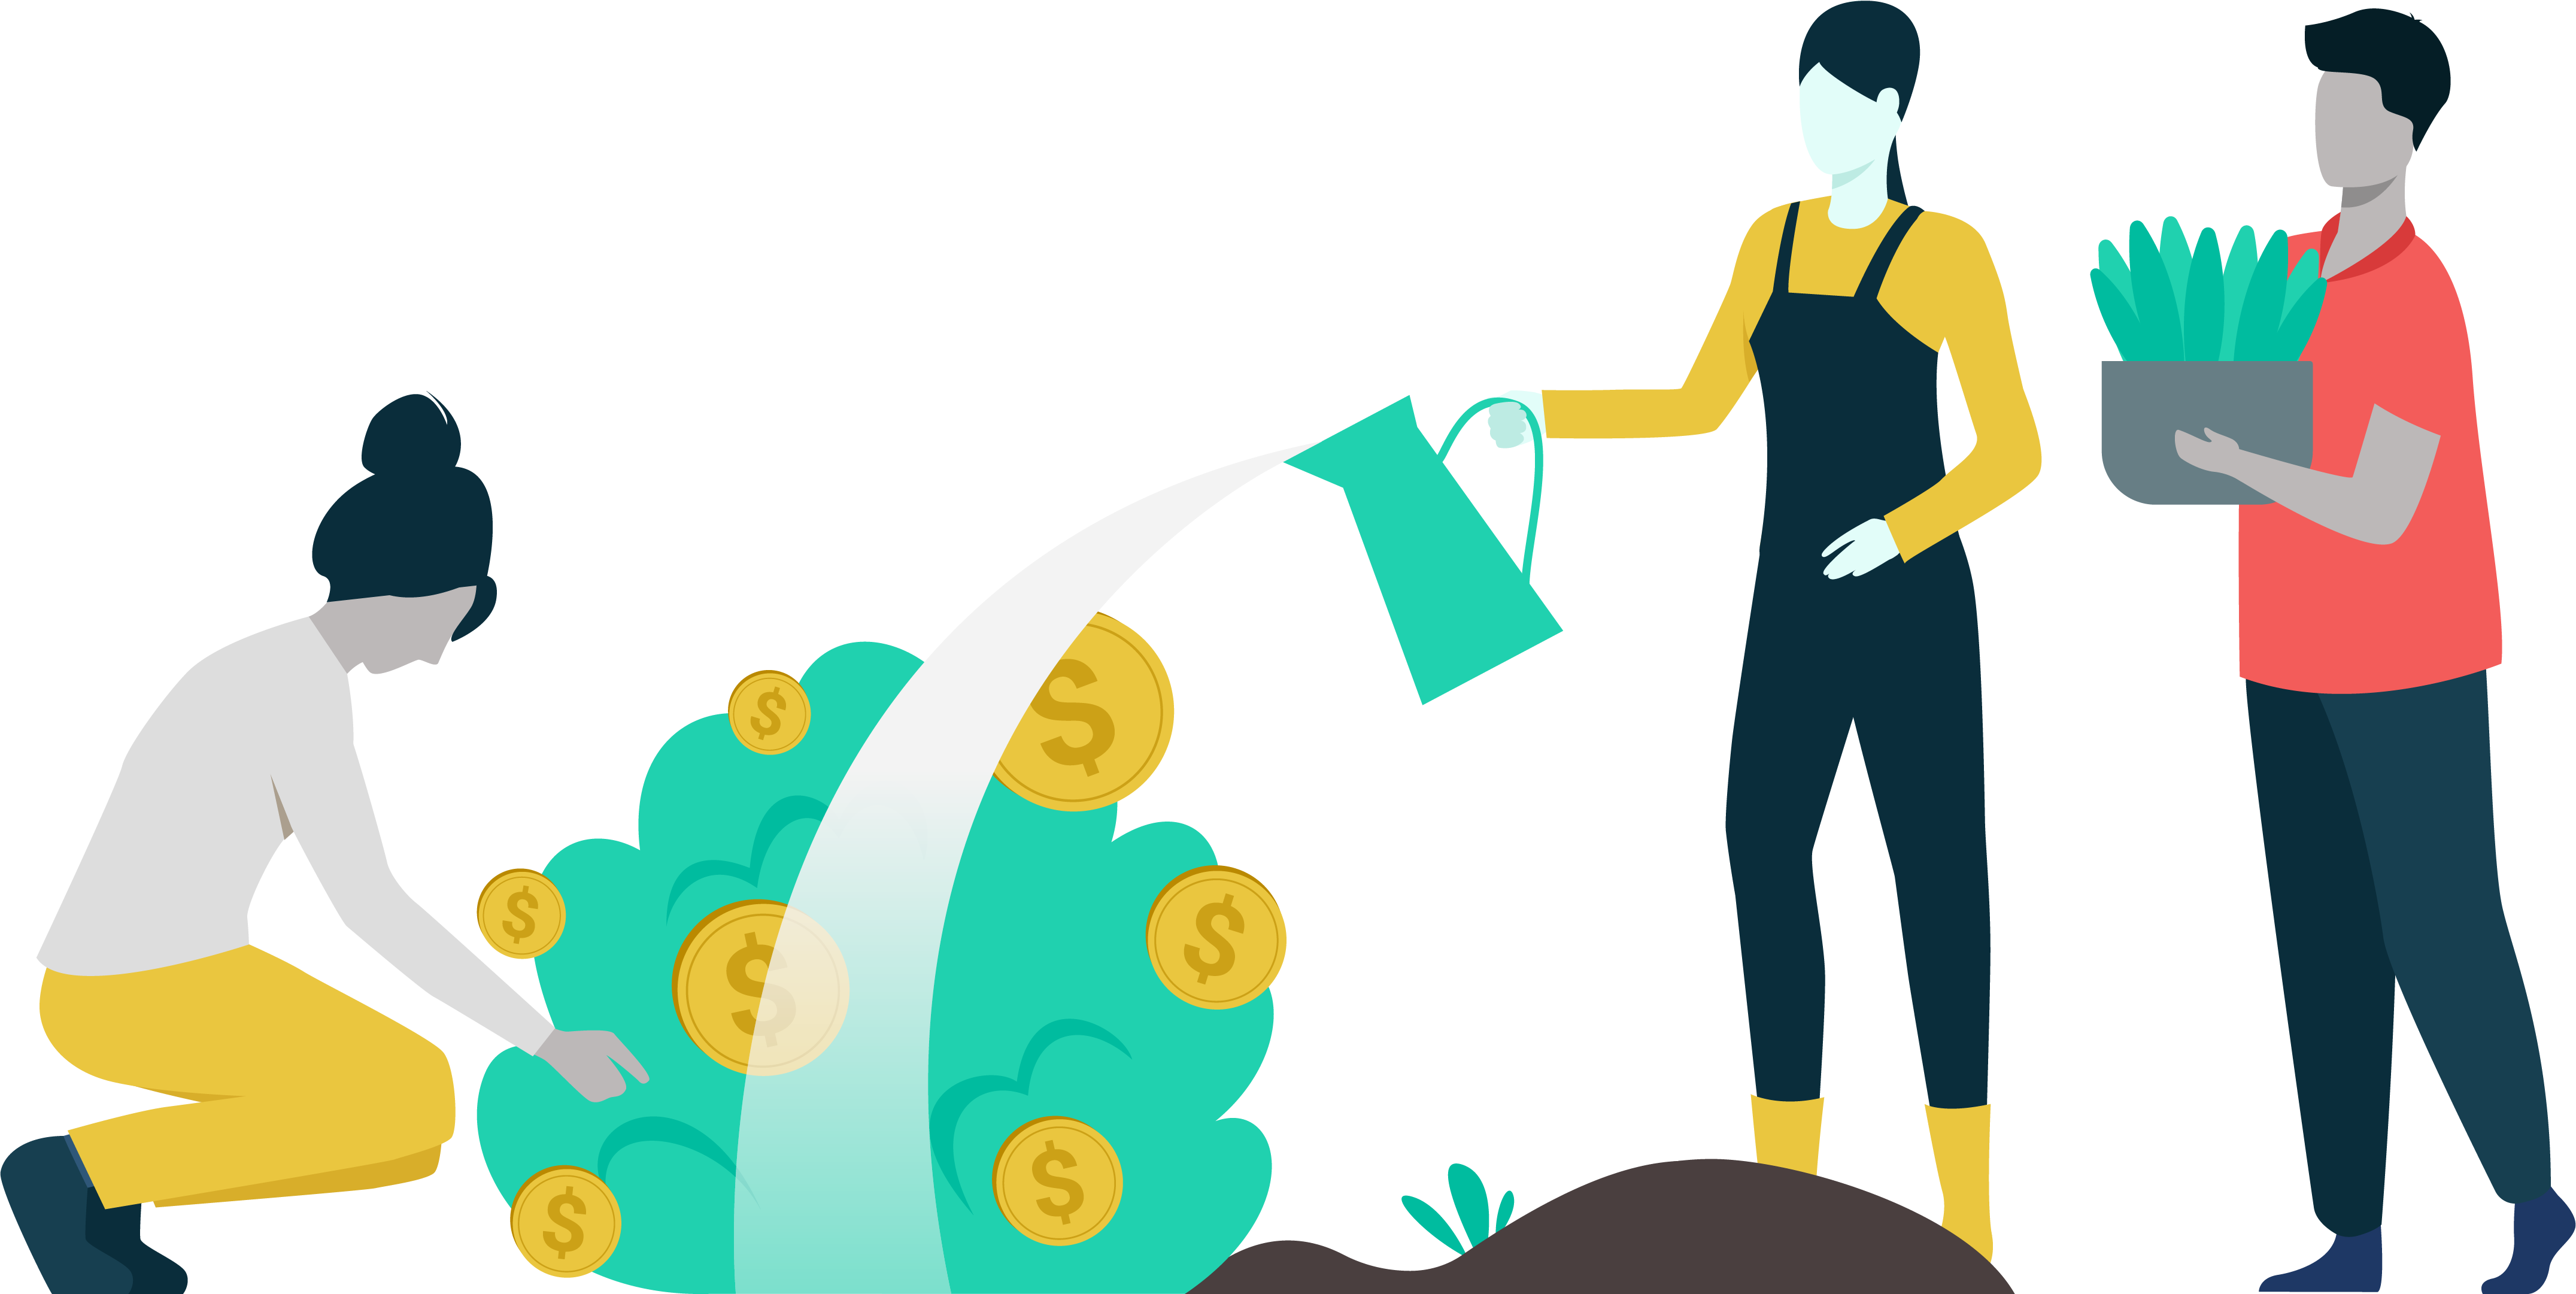 Illustrated image of the LearnLux financial wellbeing team watering a money plant